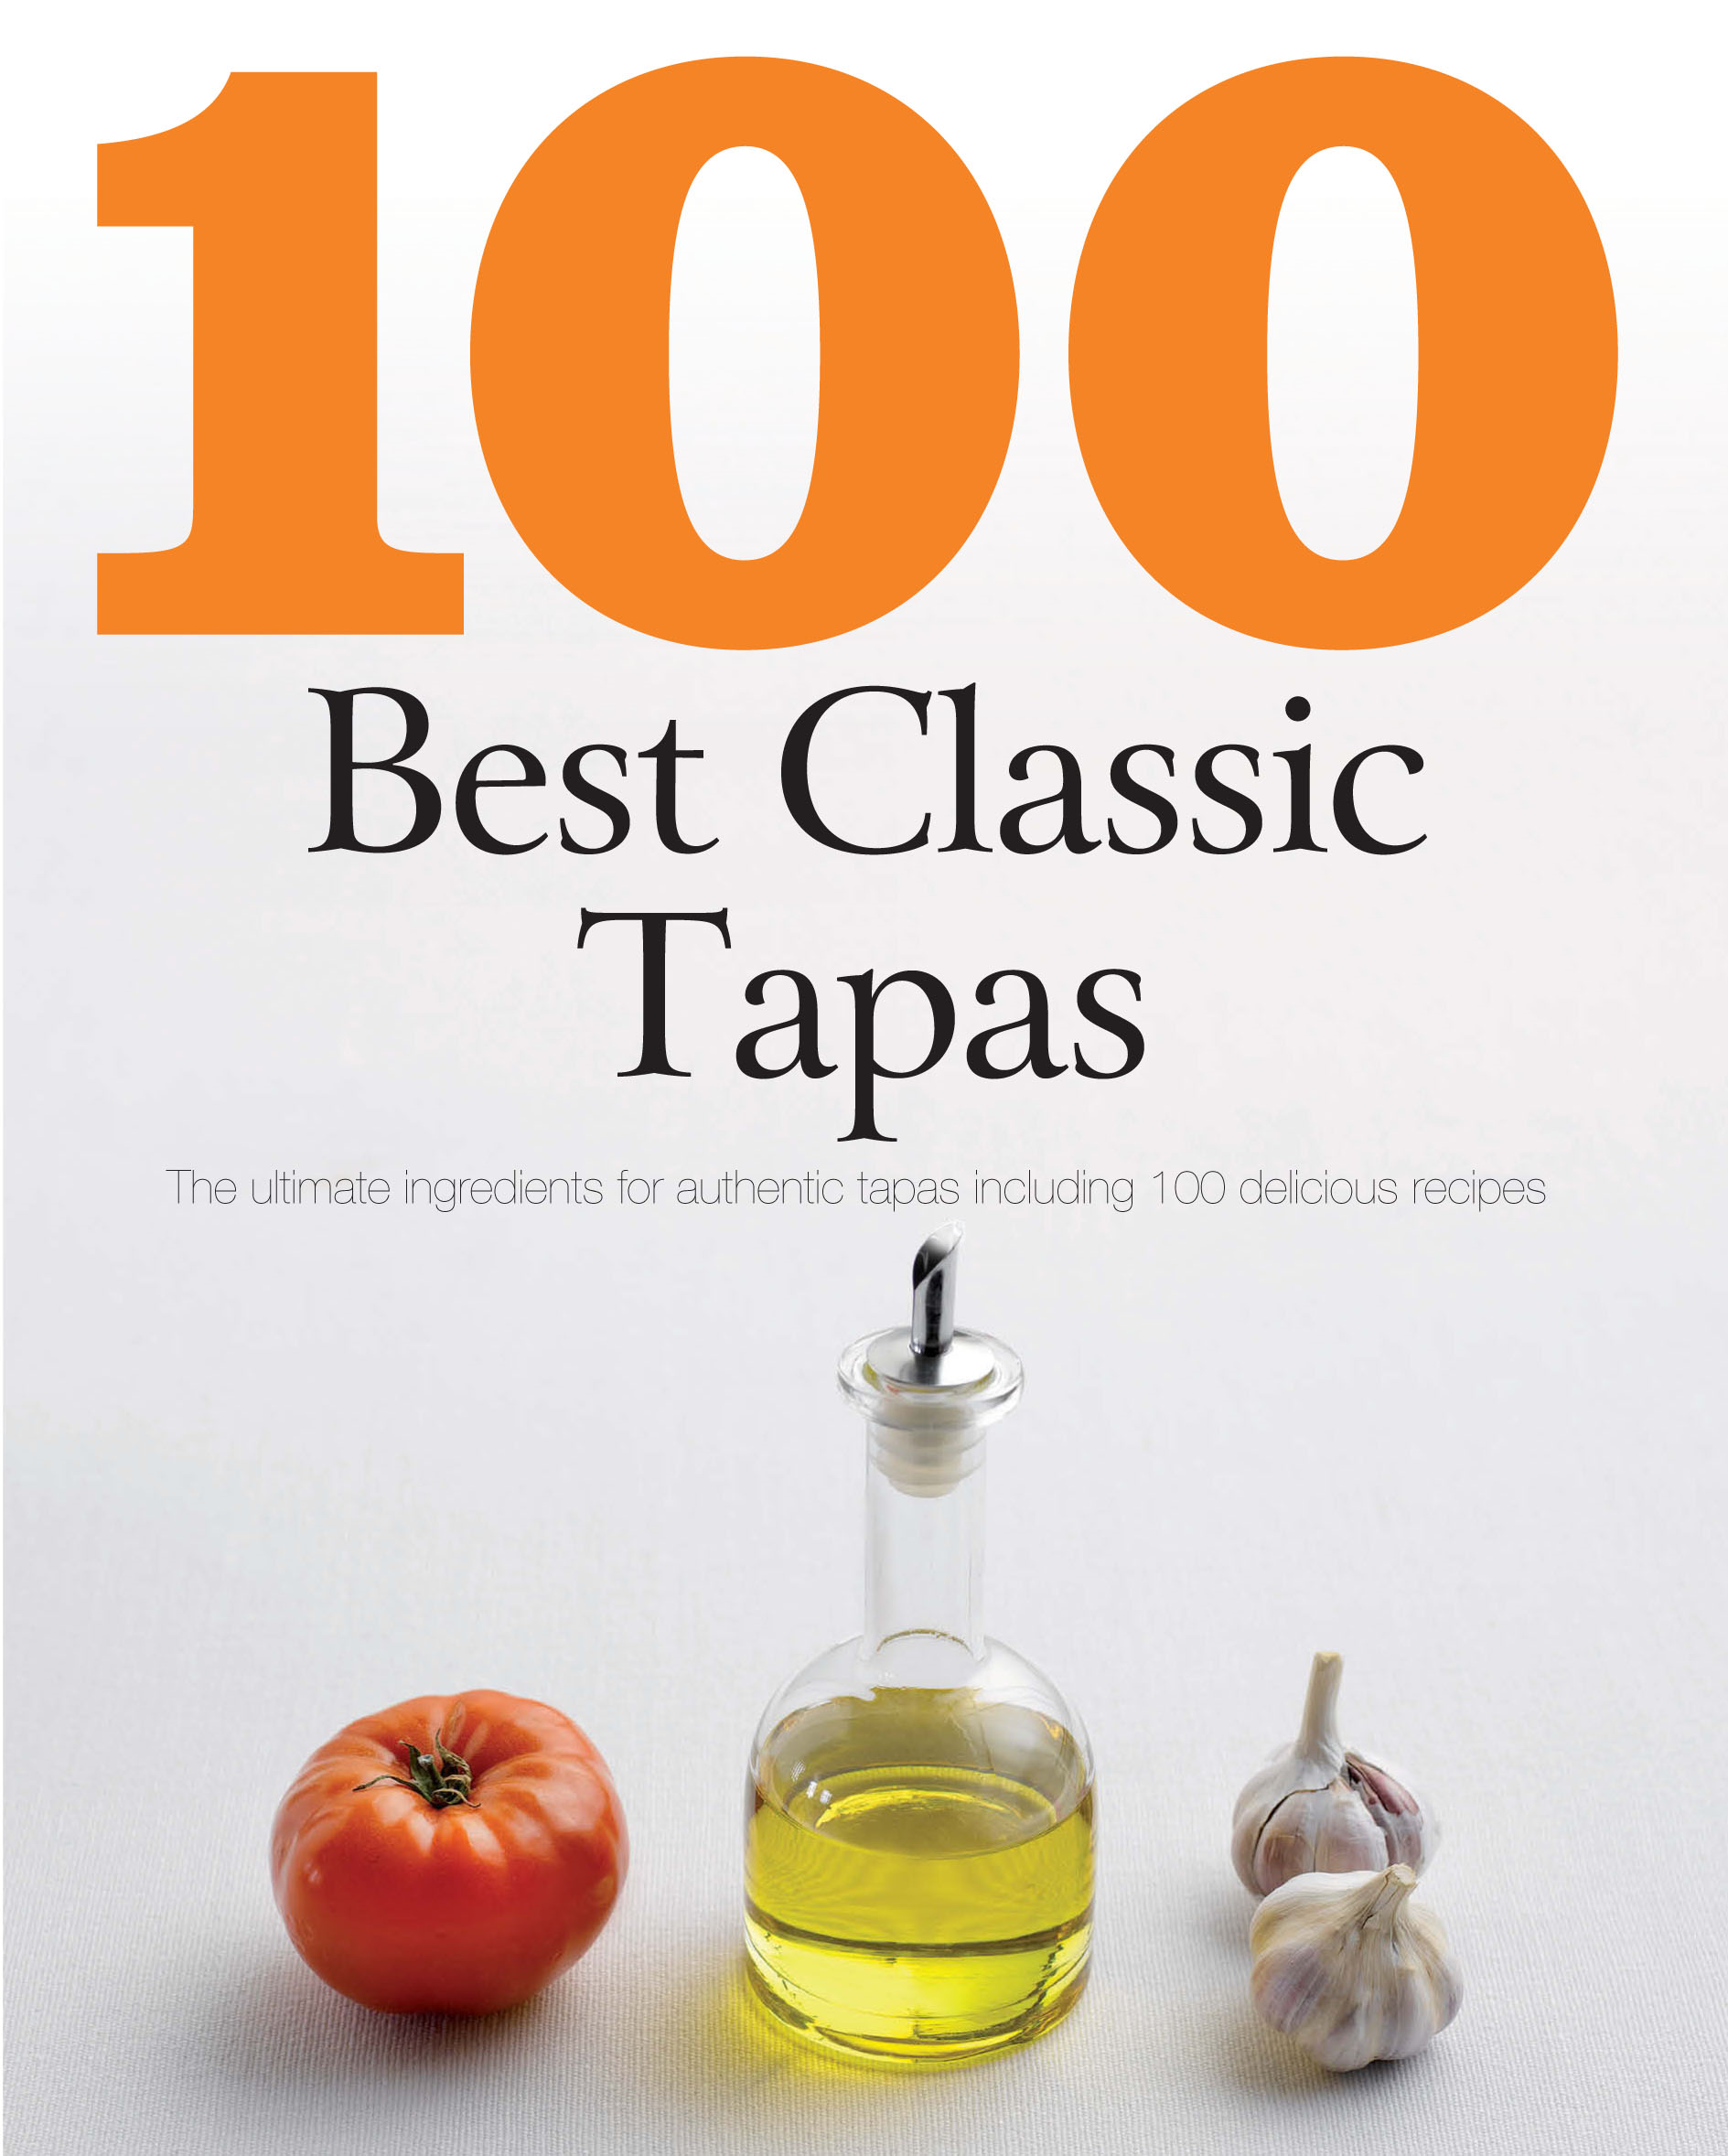 100 Best Classic Tapas (Love Food) By: Parragon Books Ltd